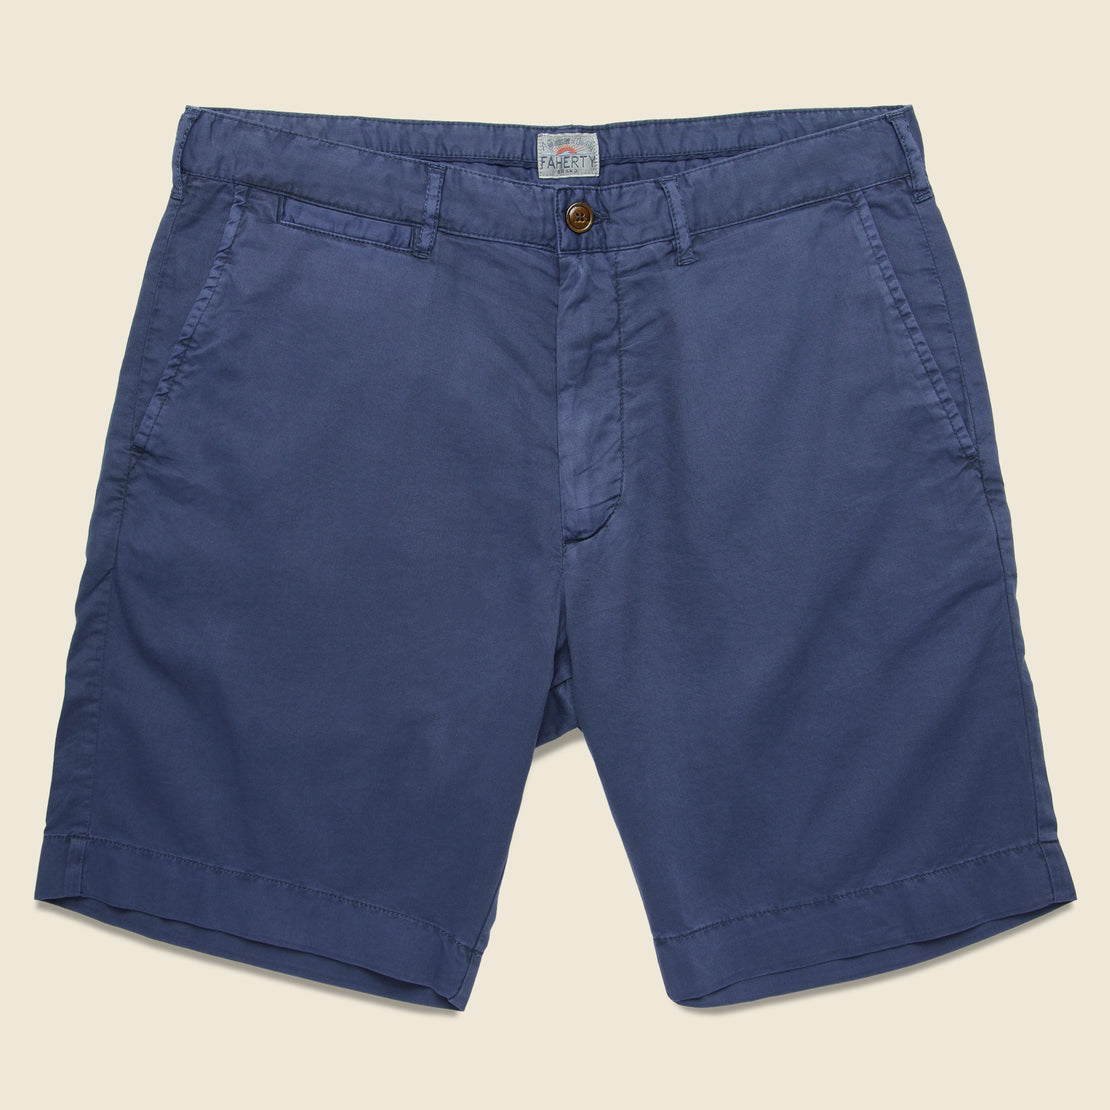 Faherty Bay Short - Navy